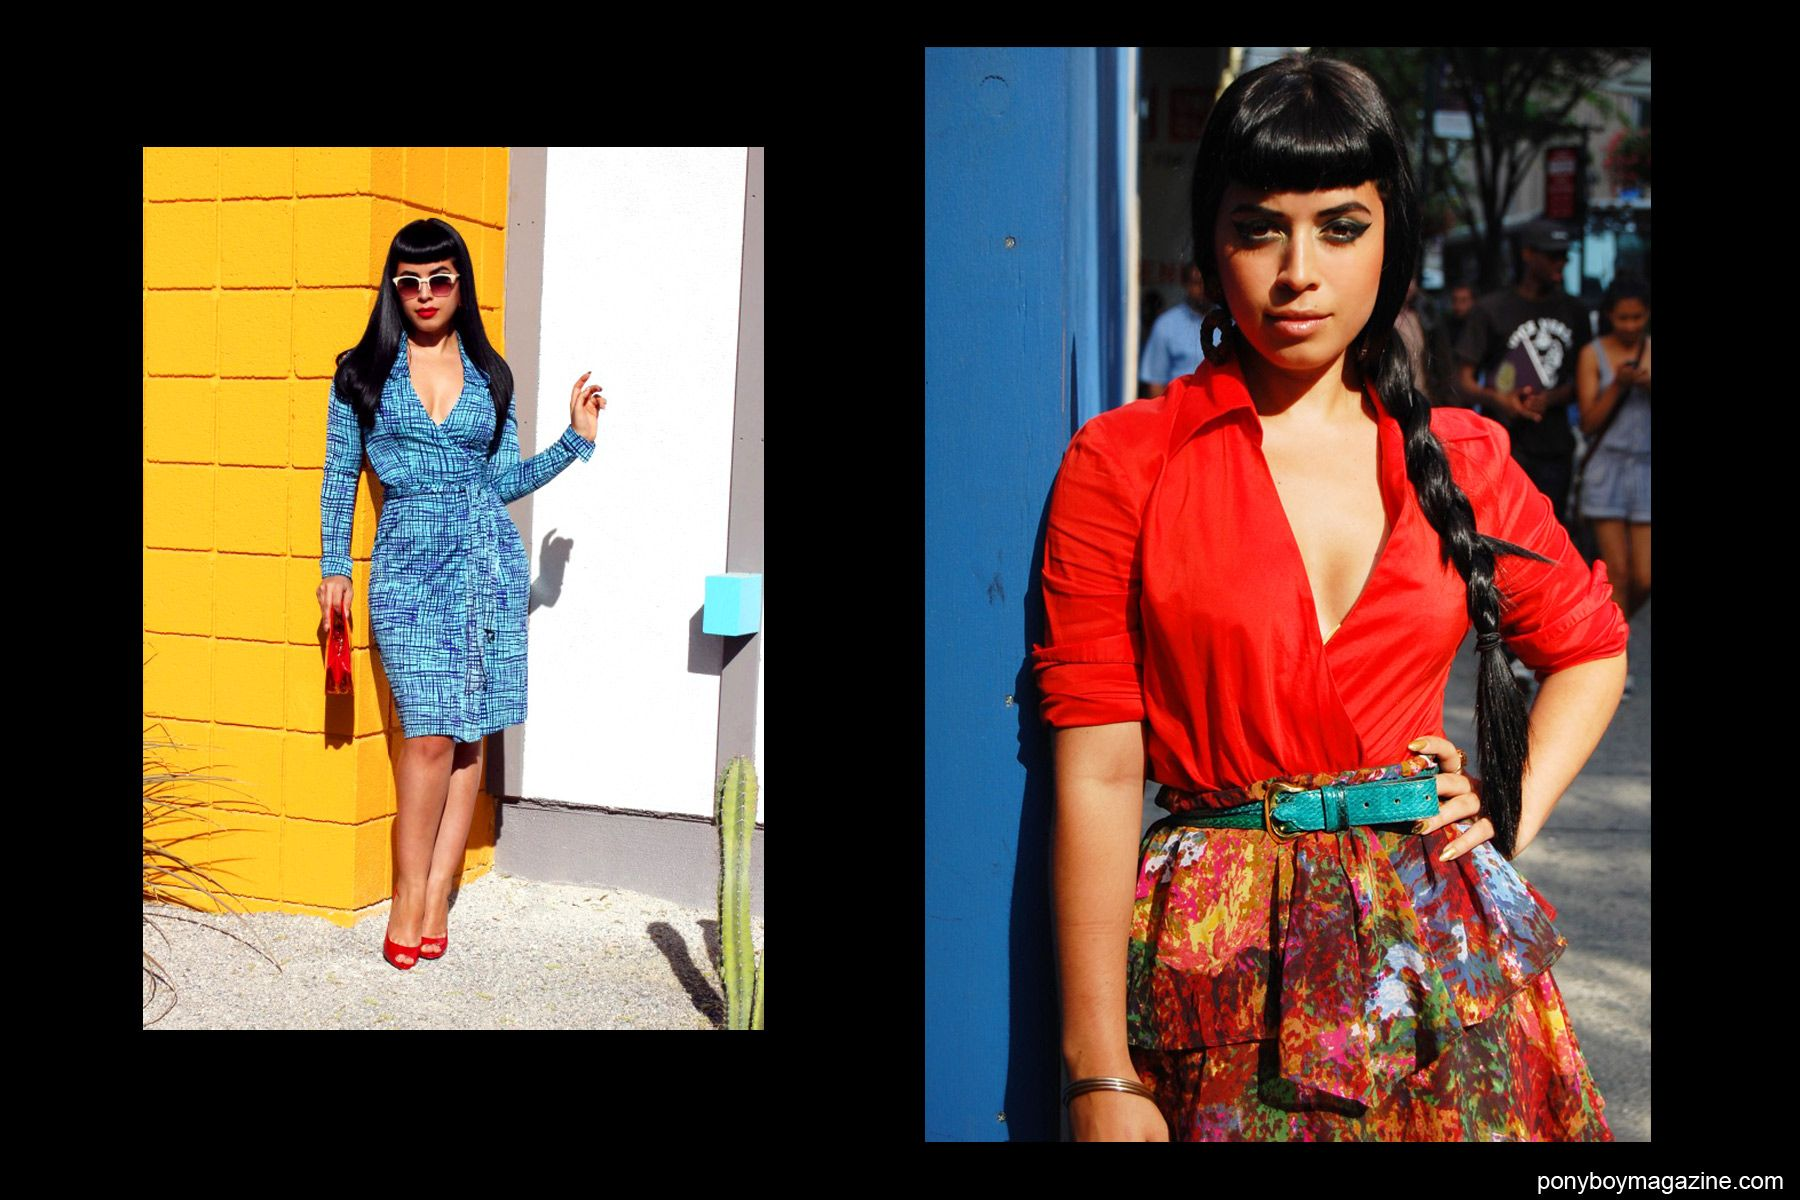 Vintage style photographed on Jasmin Rodriguez, also known as Vintage Vandal. Ponyboy Magazine NY.